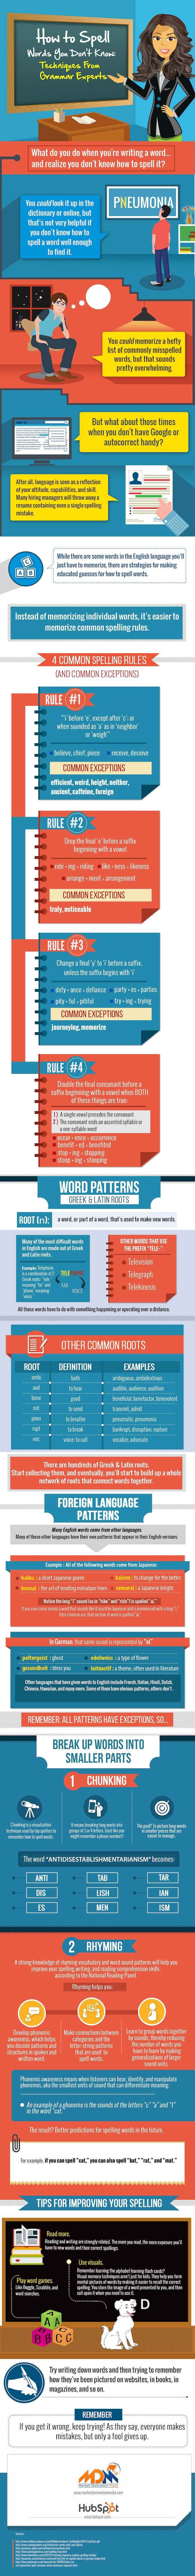 spelling-tips-infographic